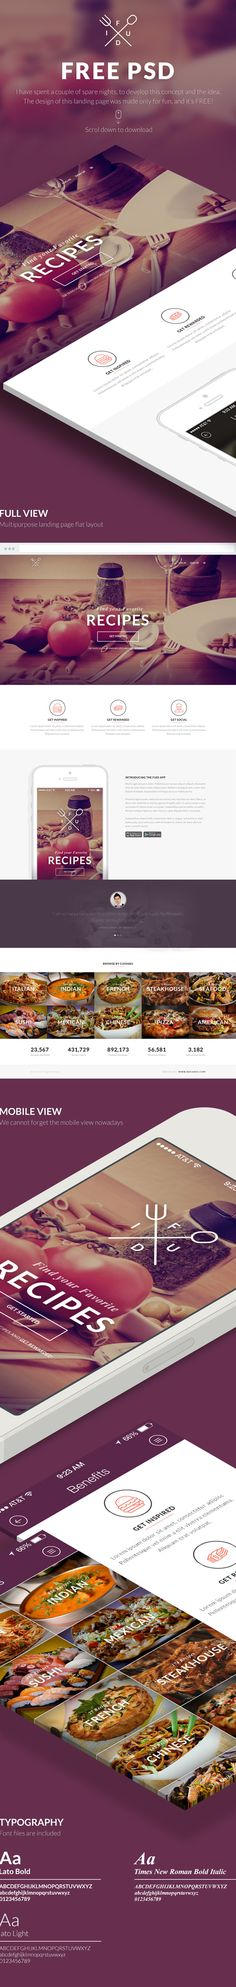 FREE PSD, Multipurpose Landing Page! by Kristijan Binski, via Behance